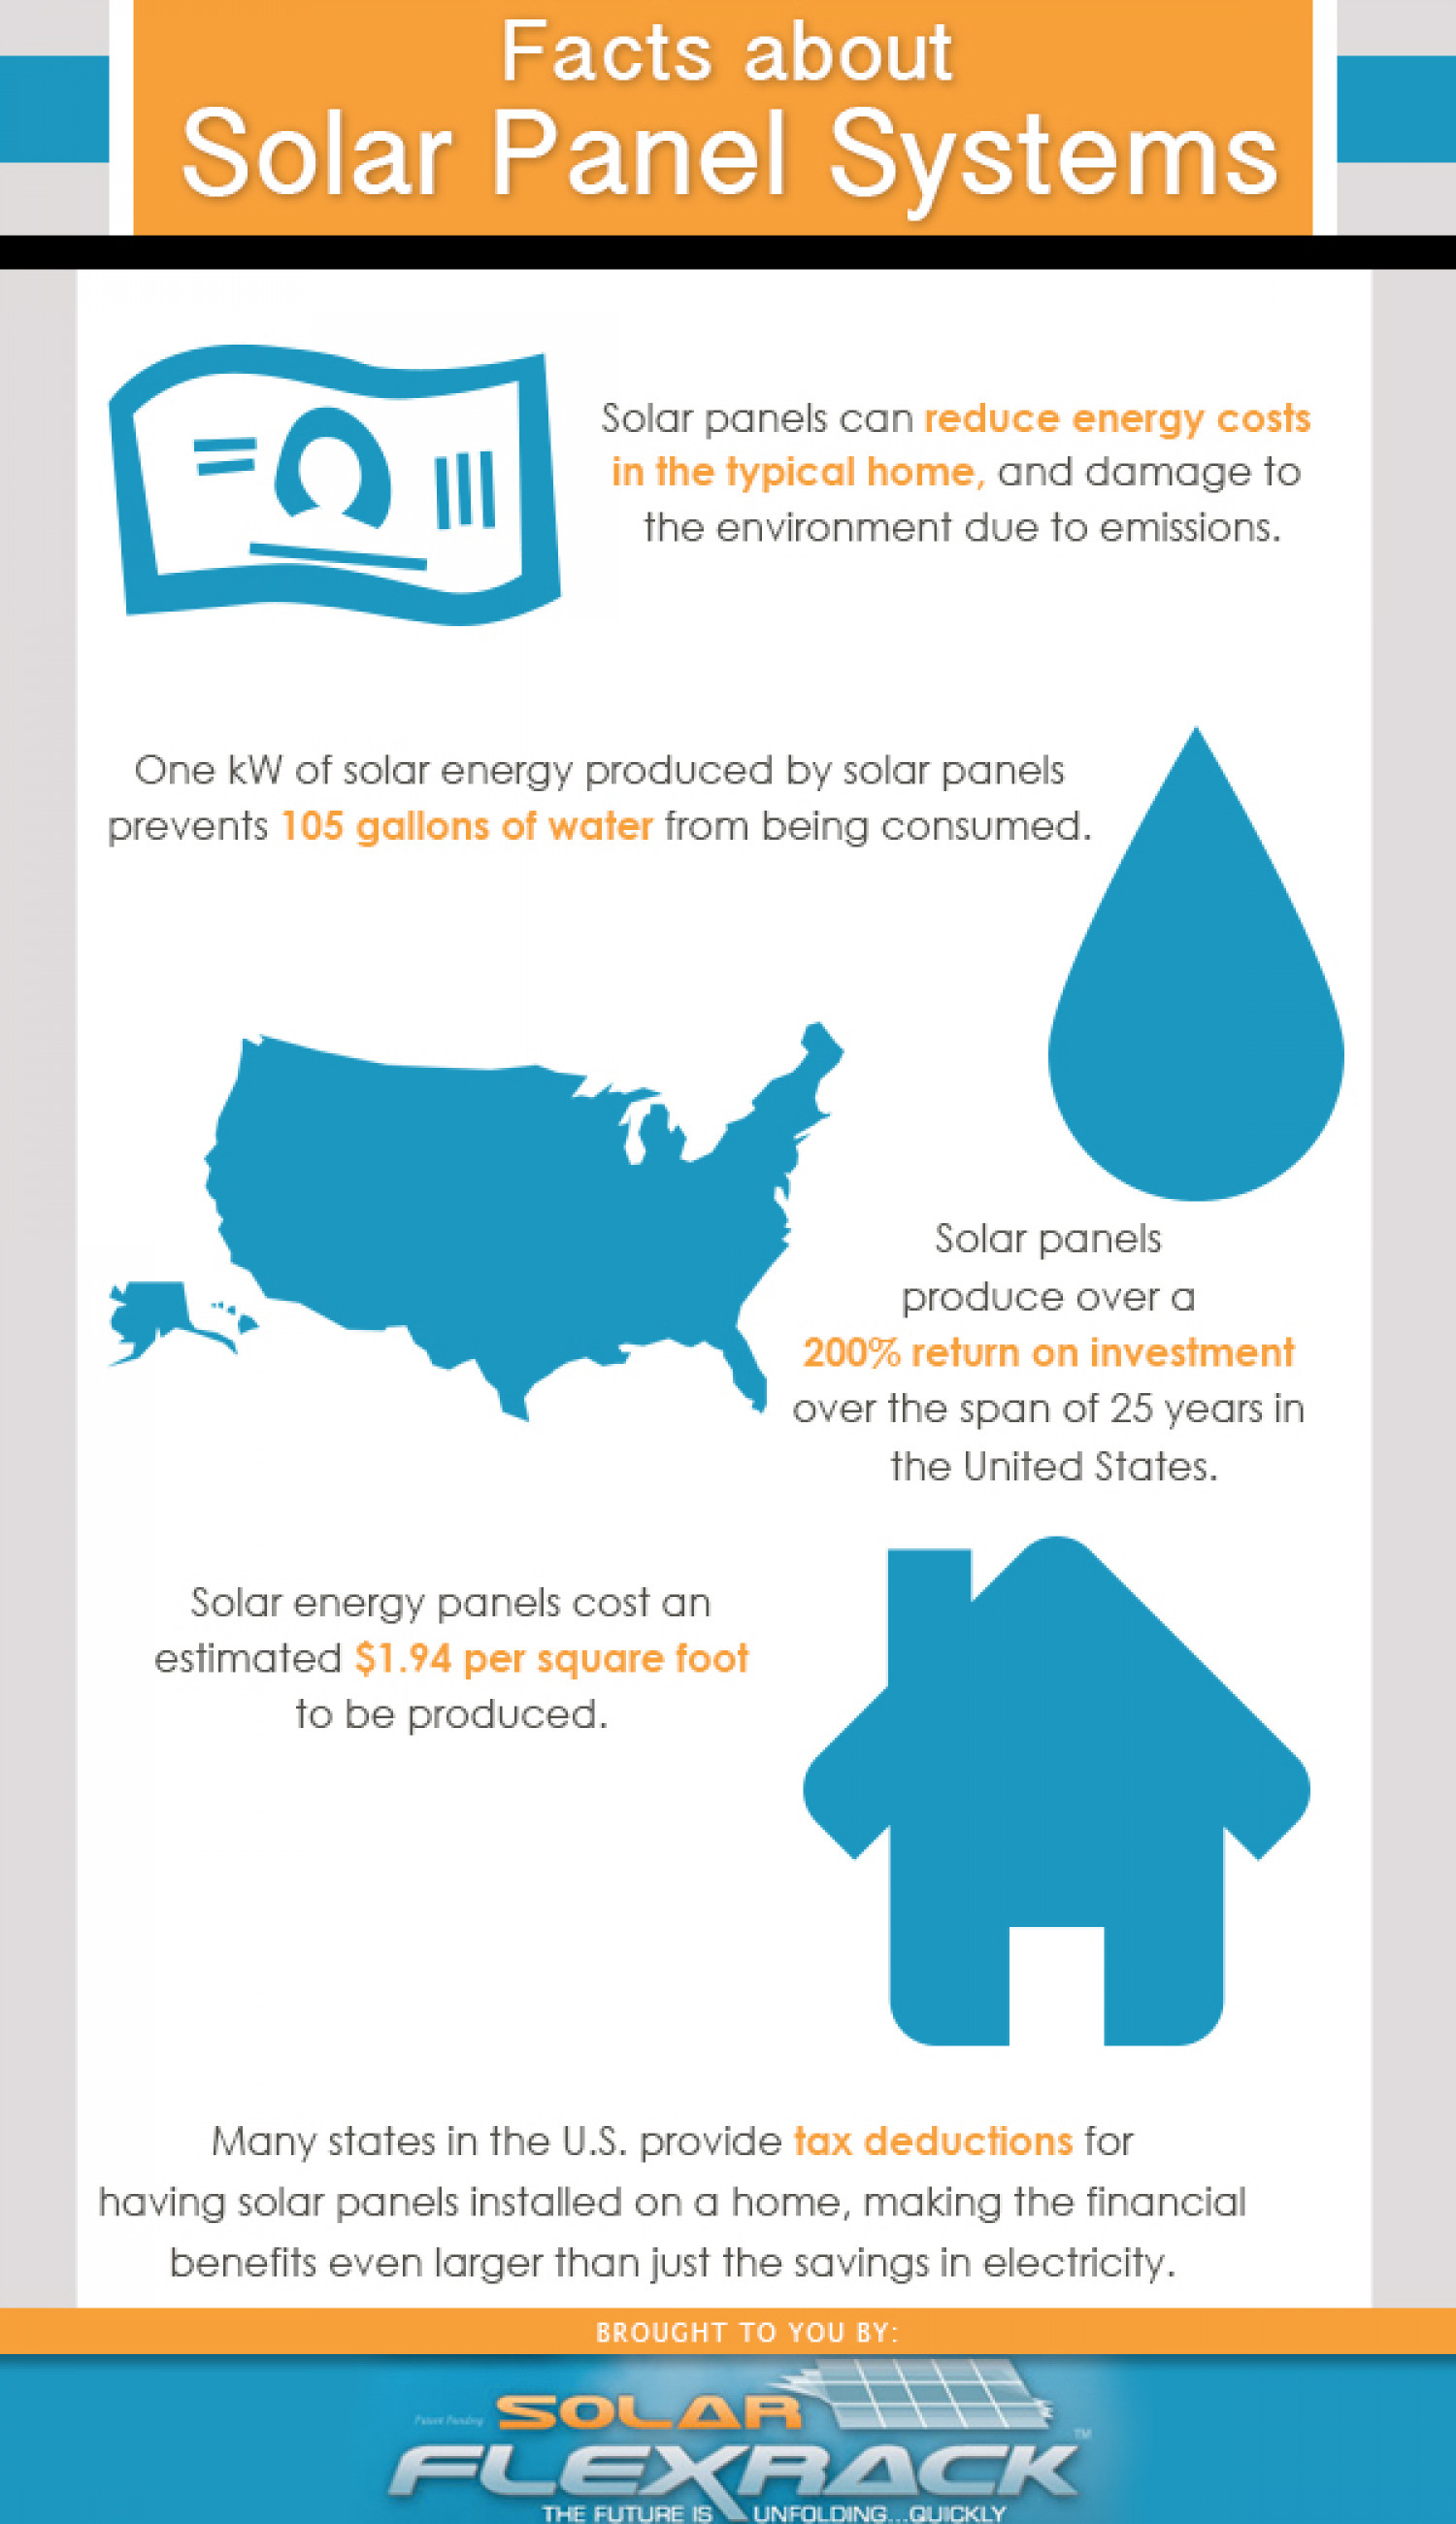 Facts About Solar Panels Systems Infographic